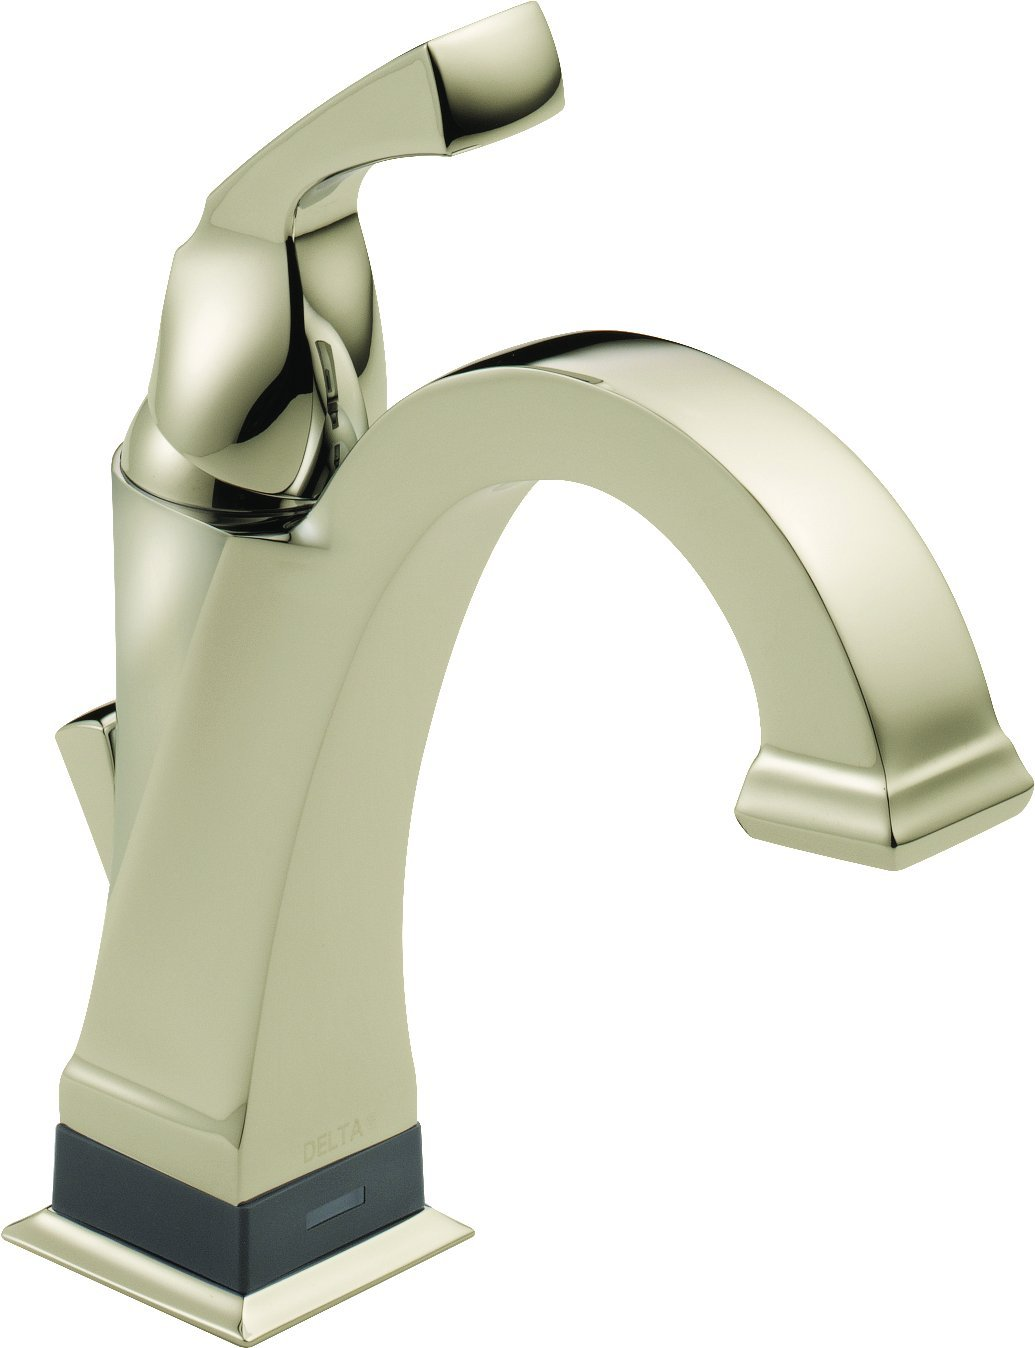 Delta Faucet 551T-PN-DST Dryden Single Handle Centerset Bathroom Faucet with Touch 20.XT Technology, Polished Nickel